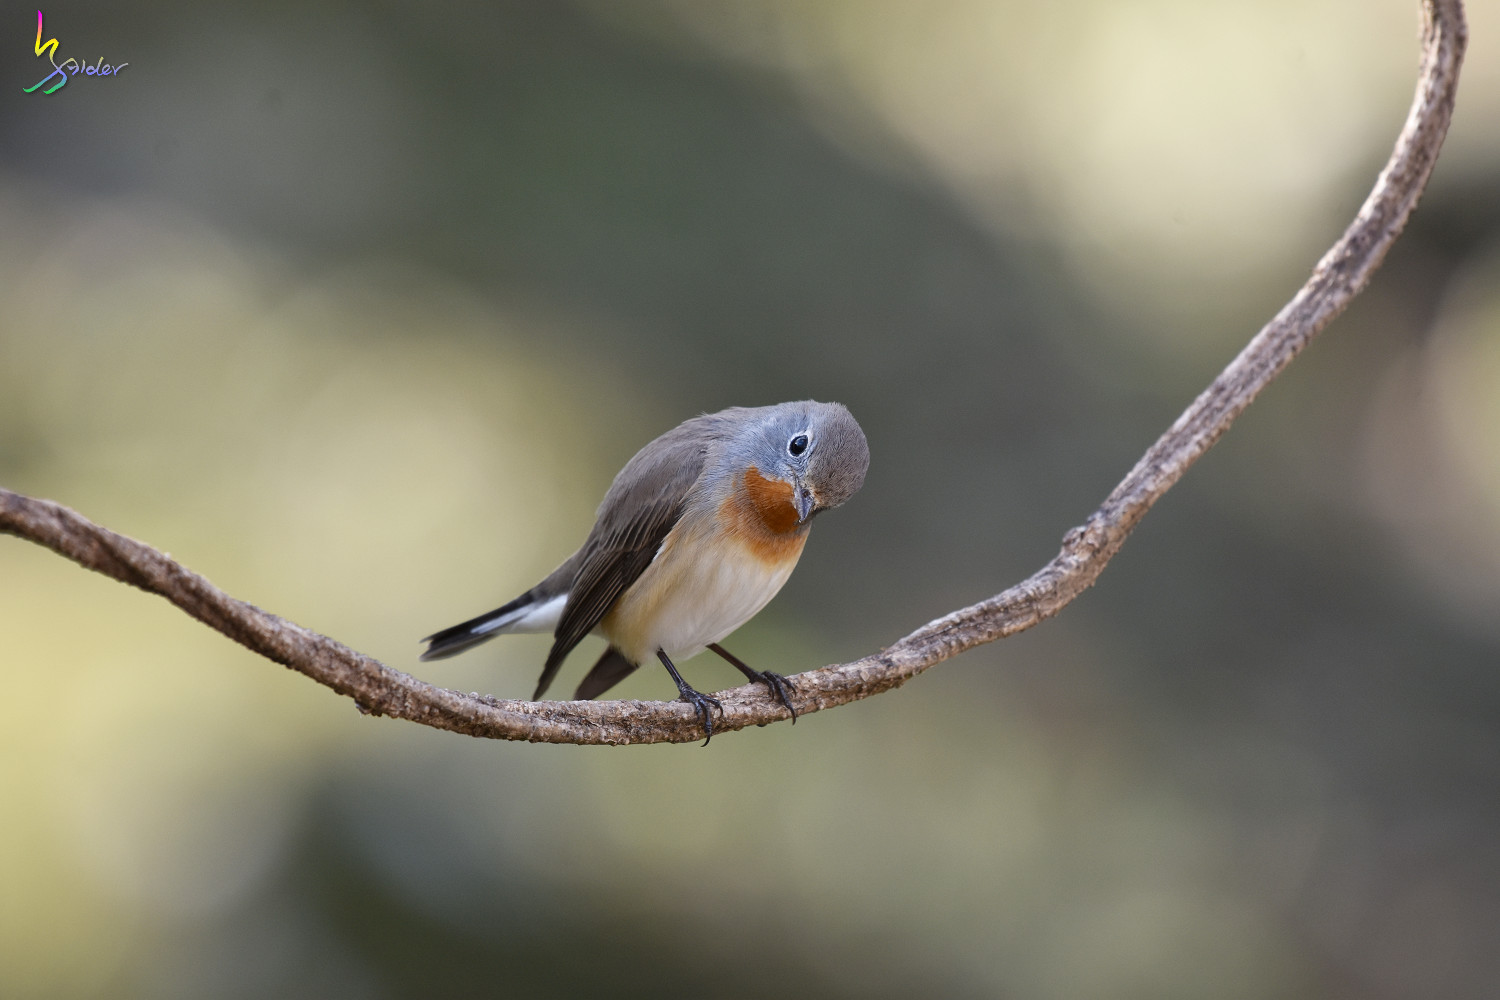 Red-breasted_Flycatcher_6813